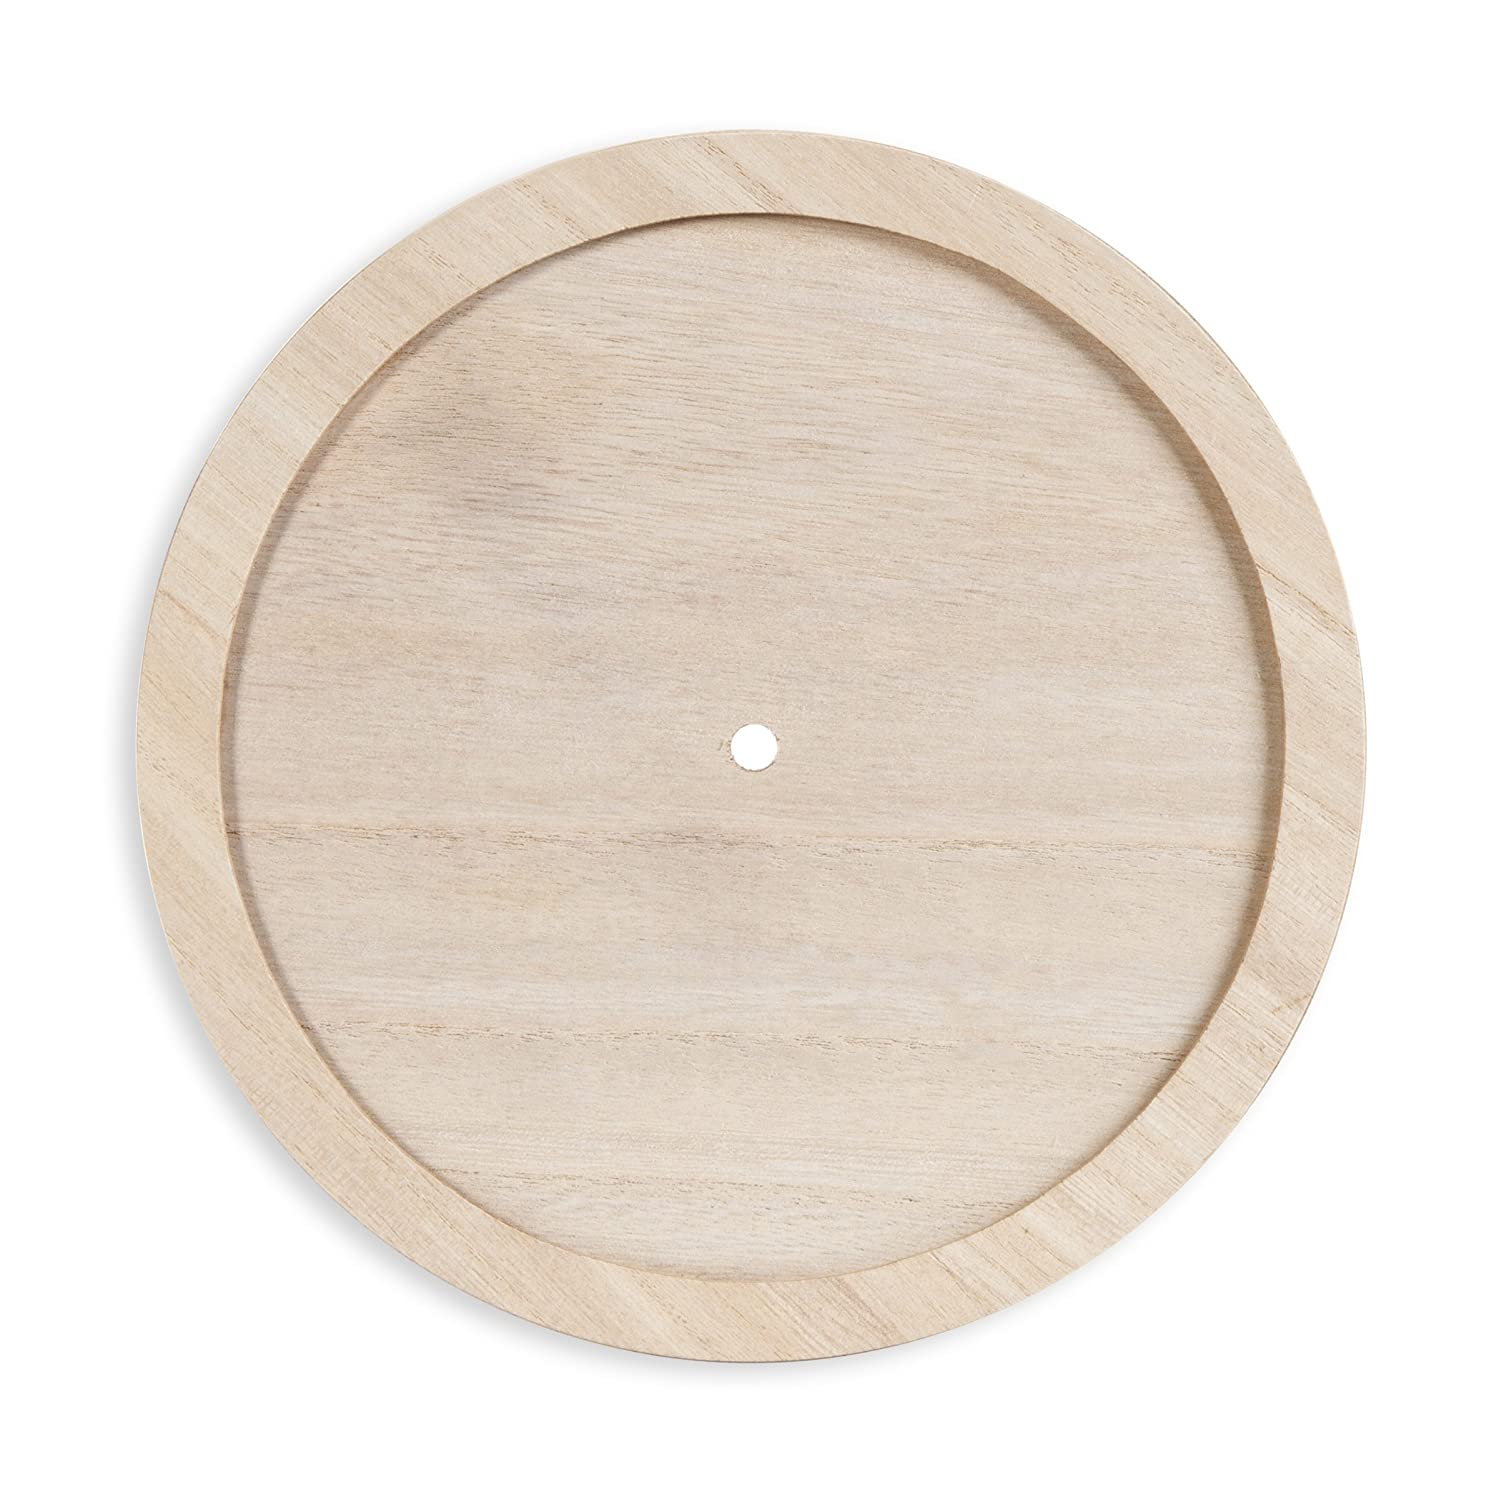 Darice DIY Unnumbered & Unfinished Wood Circle with Raised Trim Clock Face, Multicolor